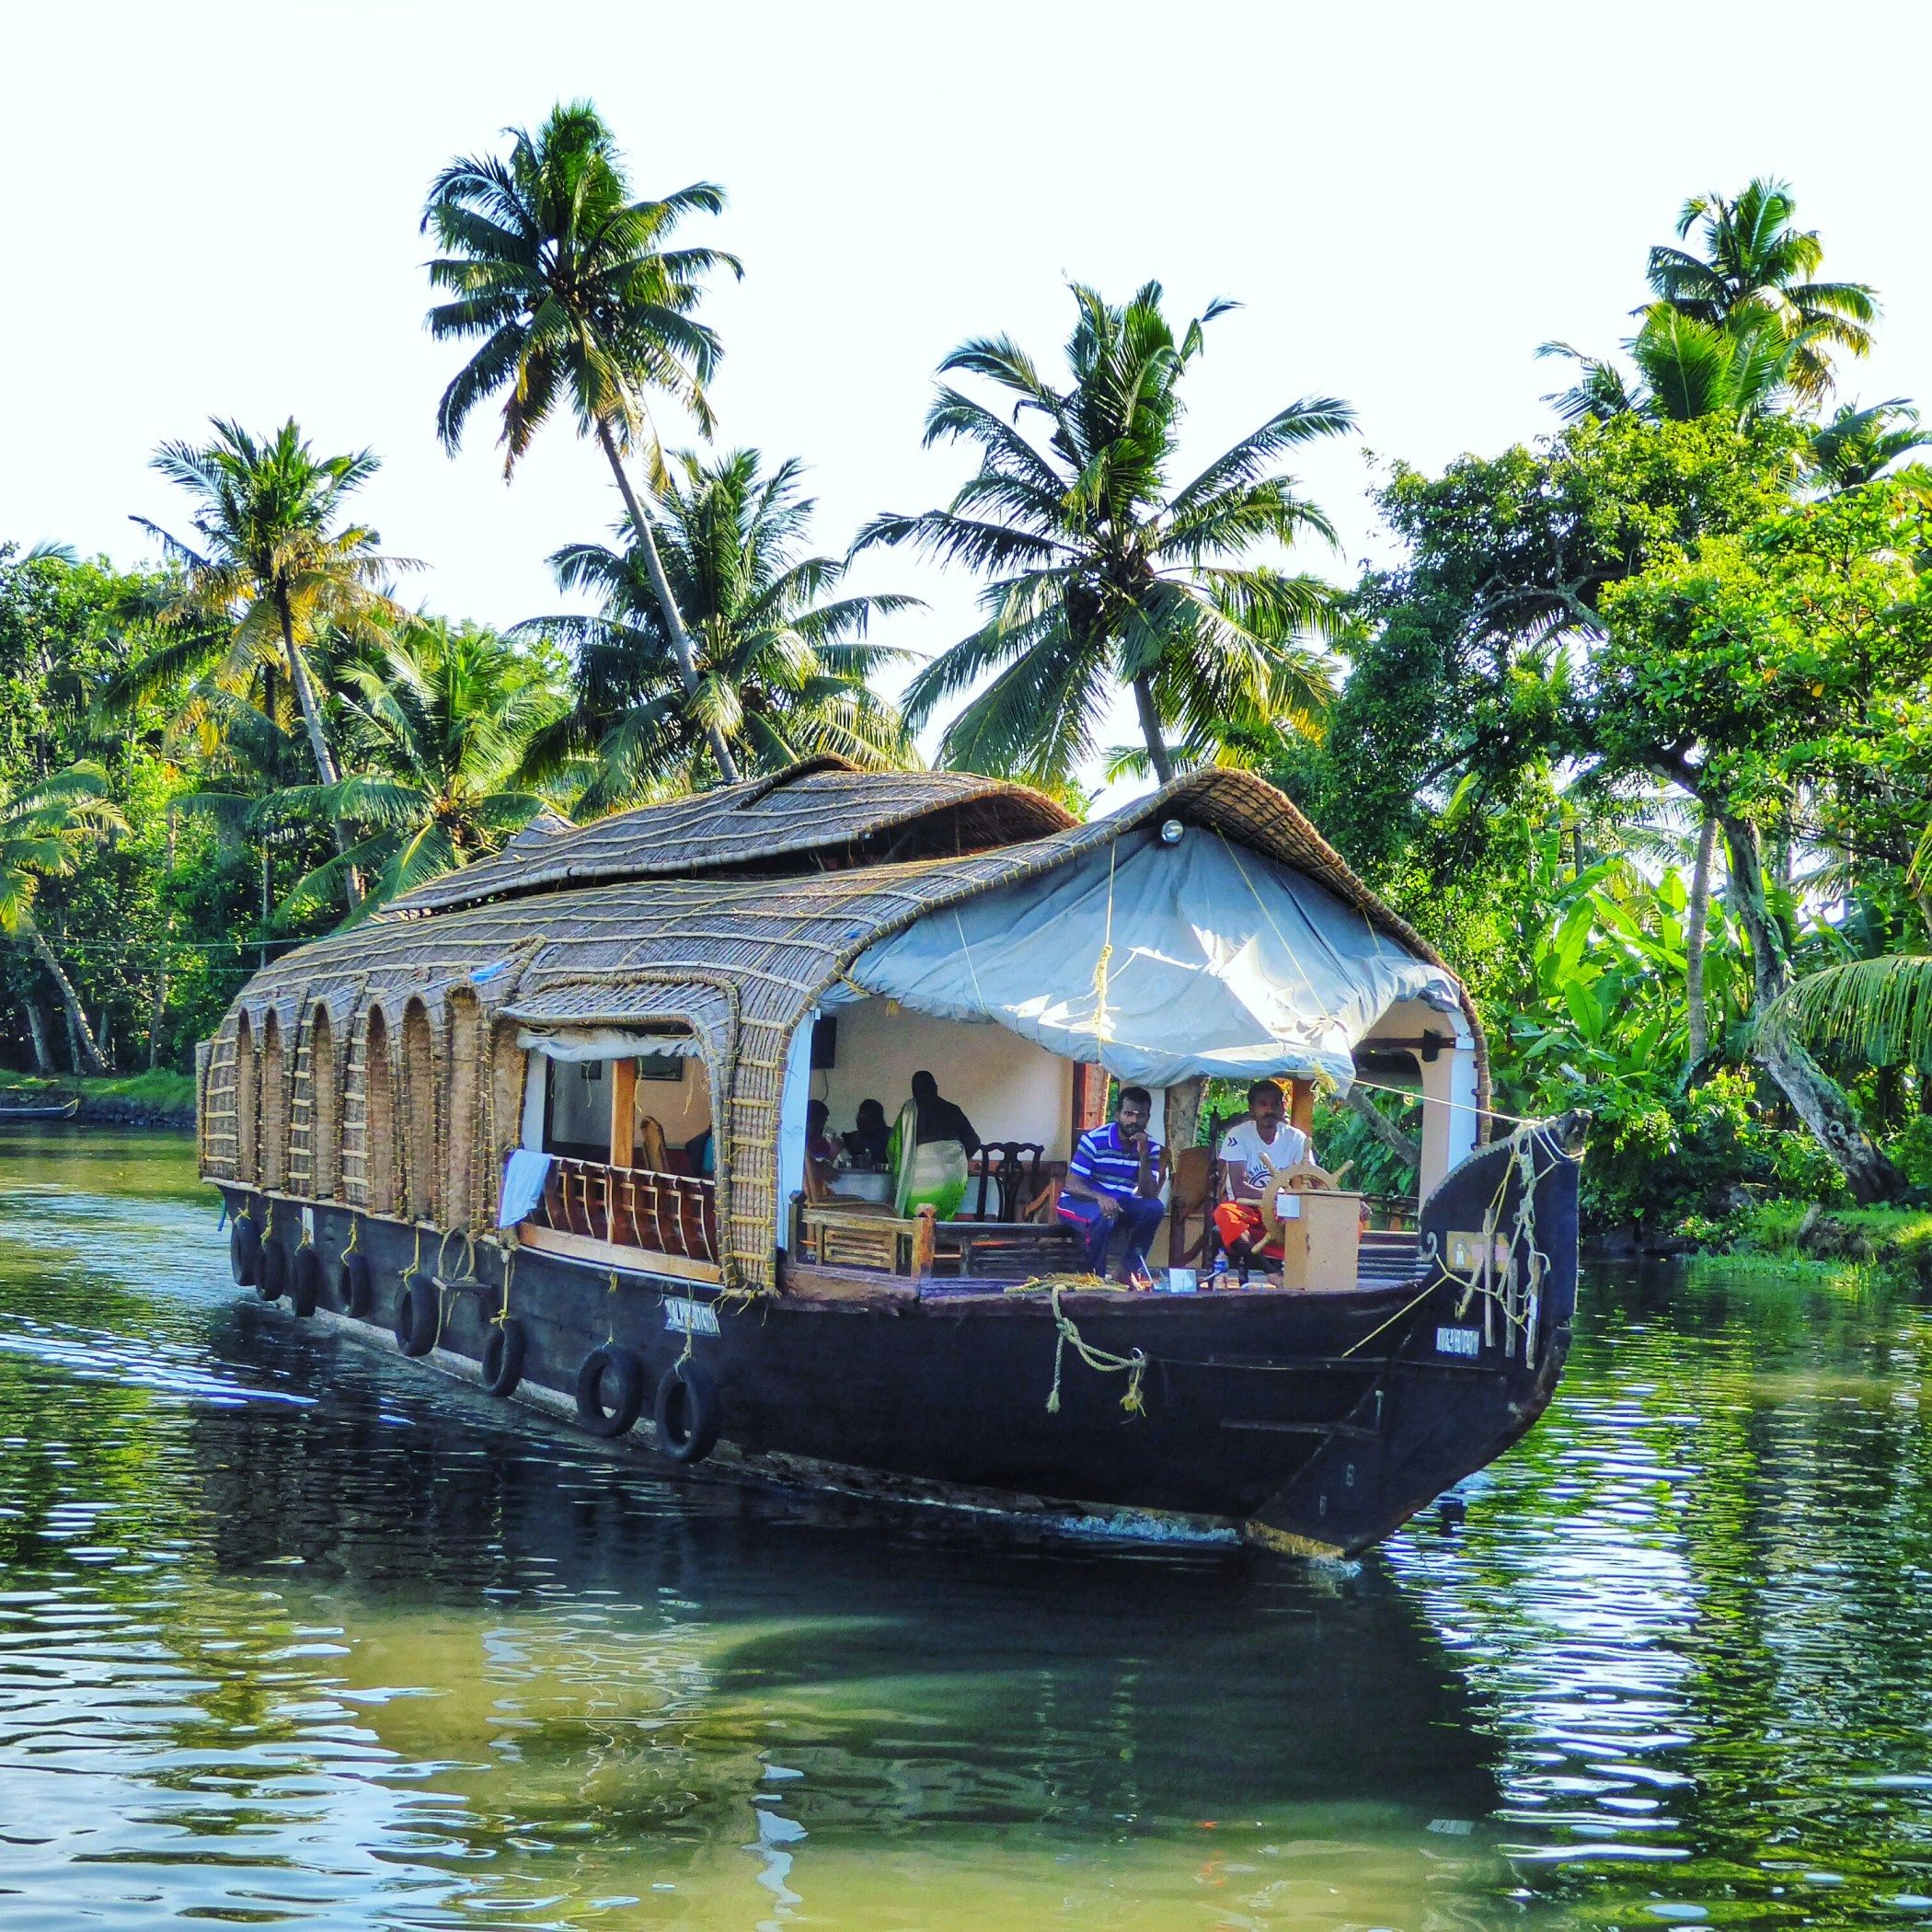 900 Best Images About India Kerala On Pinterest: 10 Reasons To Visit Kerala